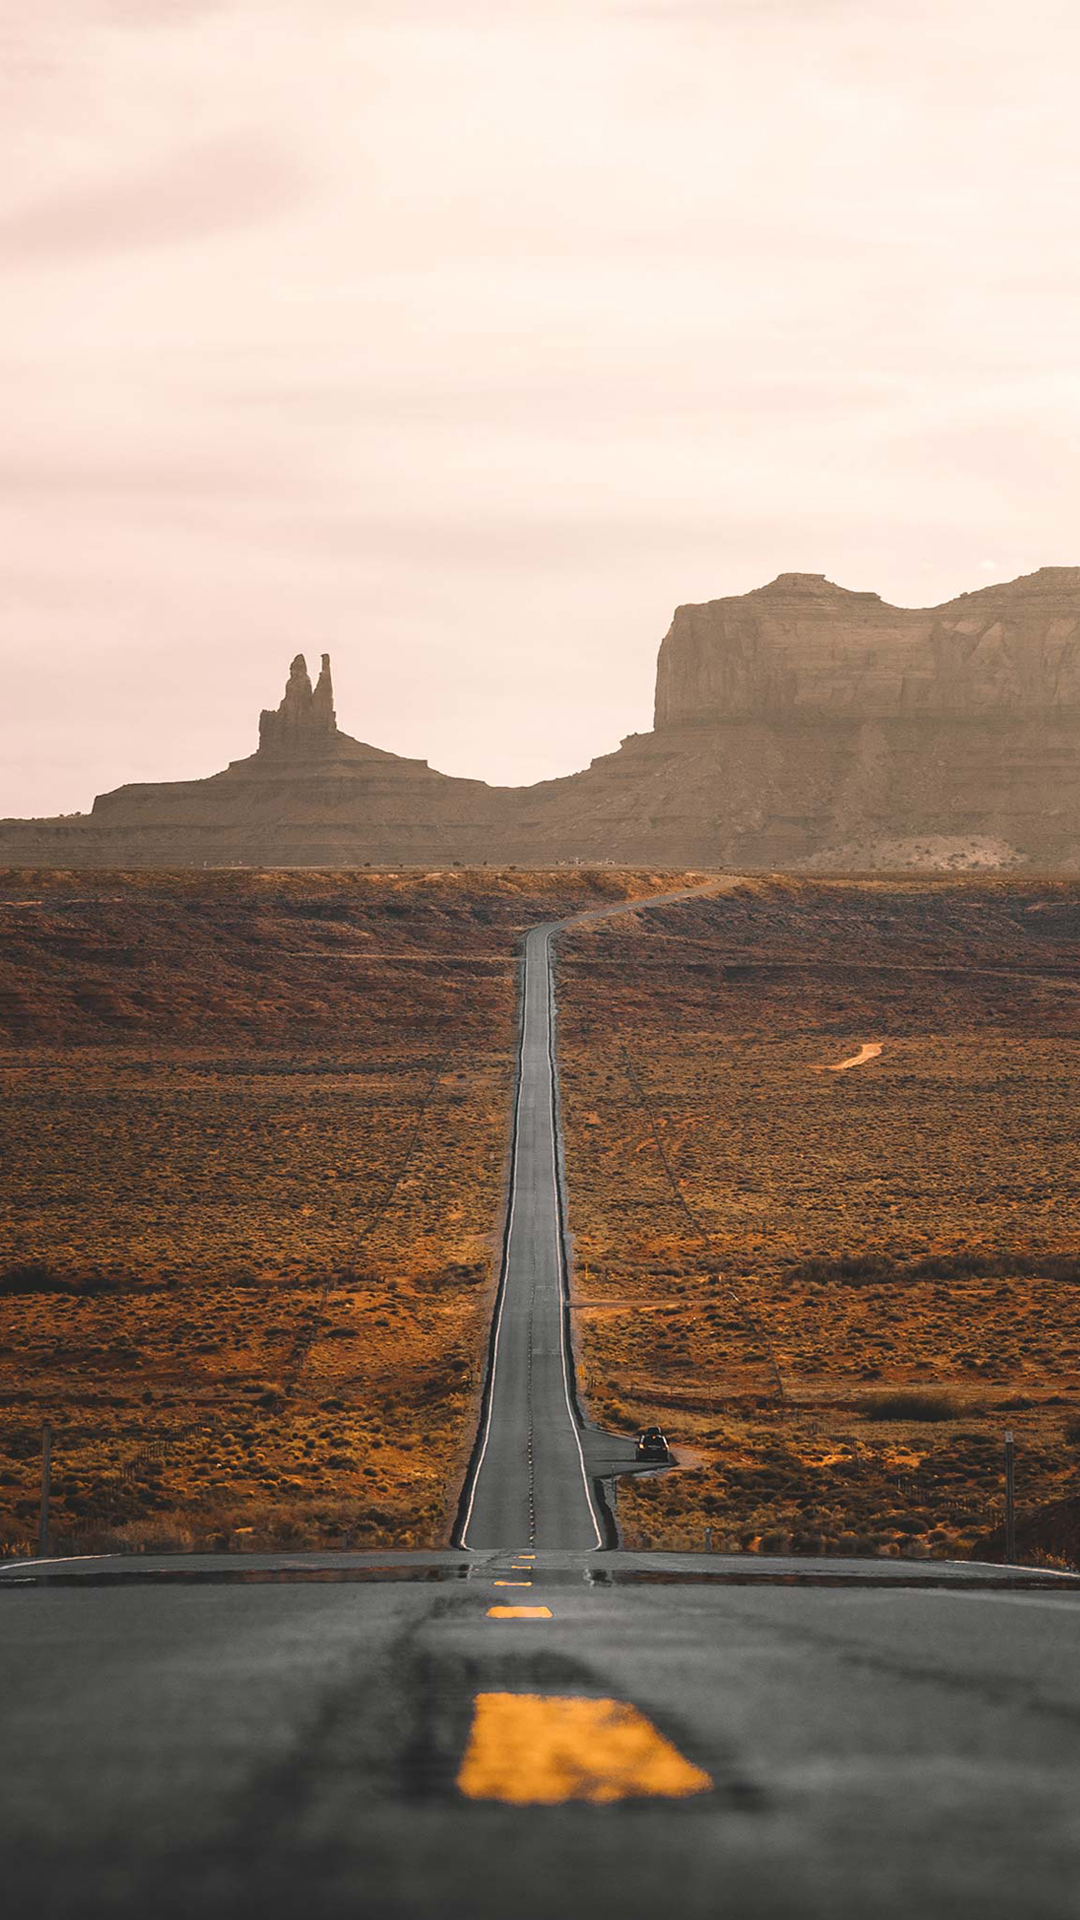 2017 Wallpaper Iphone Road To Monument Valley By Andy Feliciotti Dsktps